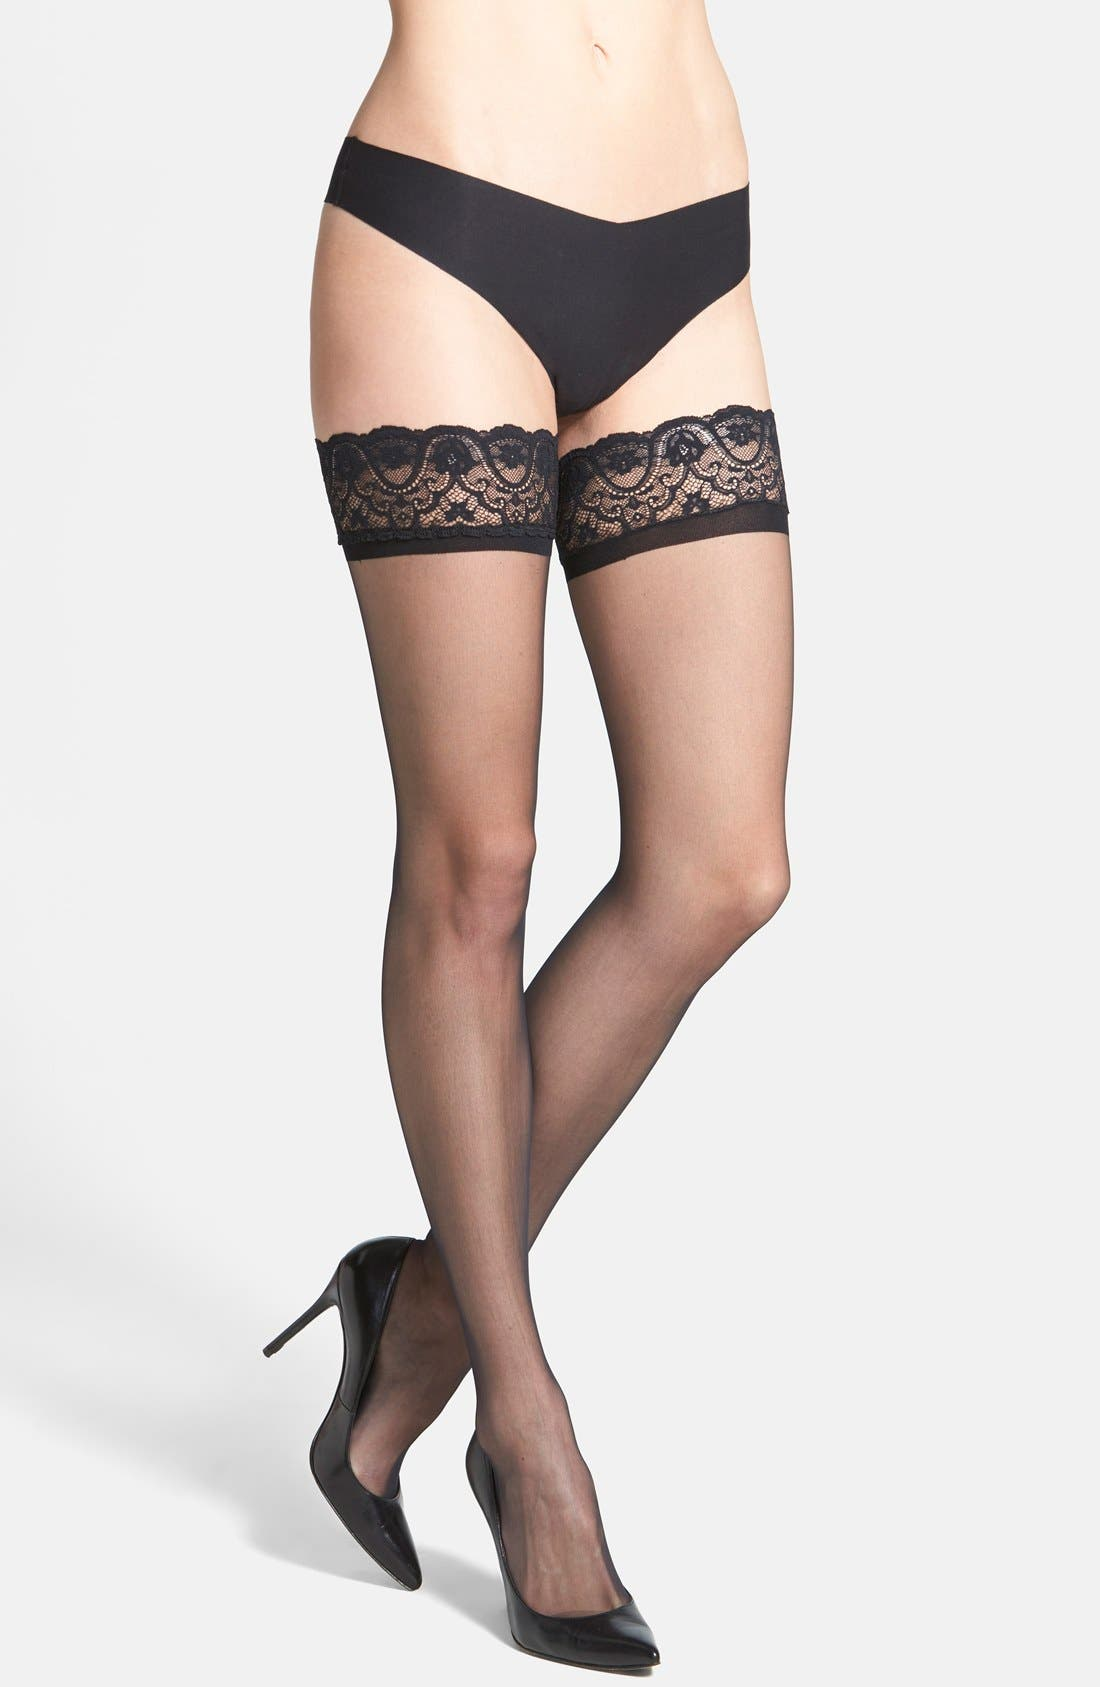 Commando Up All Night Stay-Up Stockings